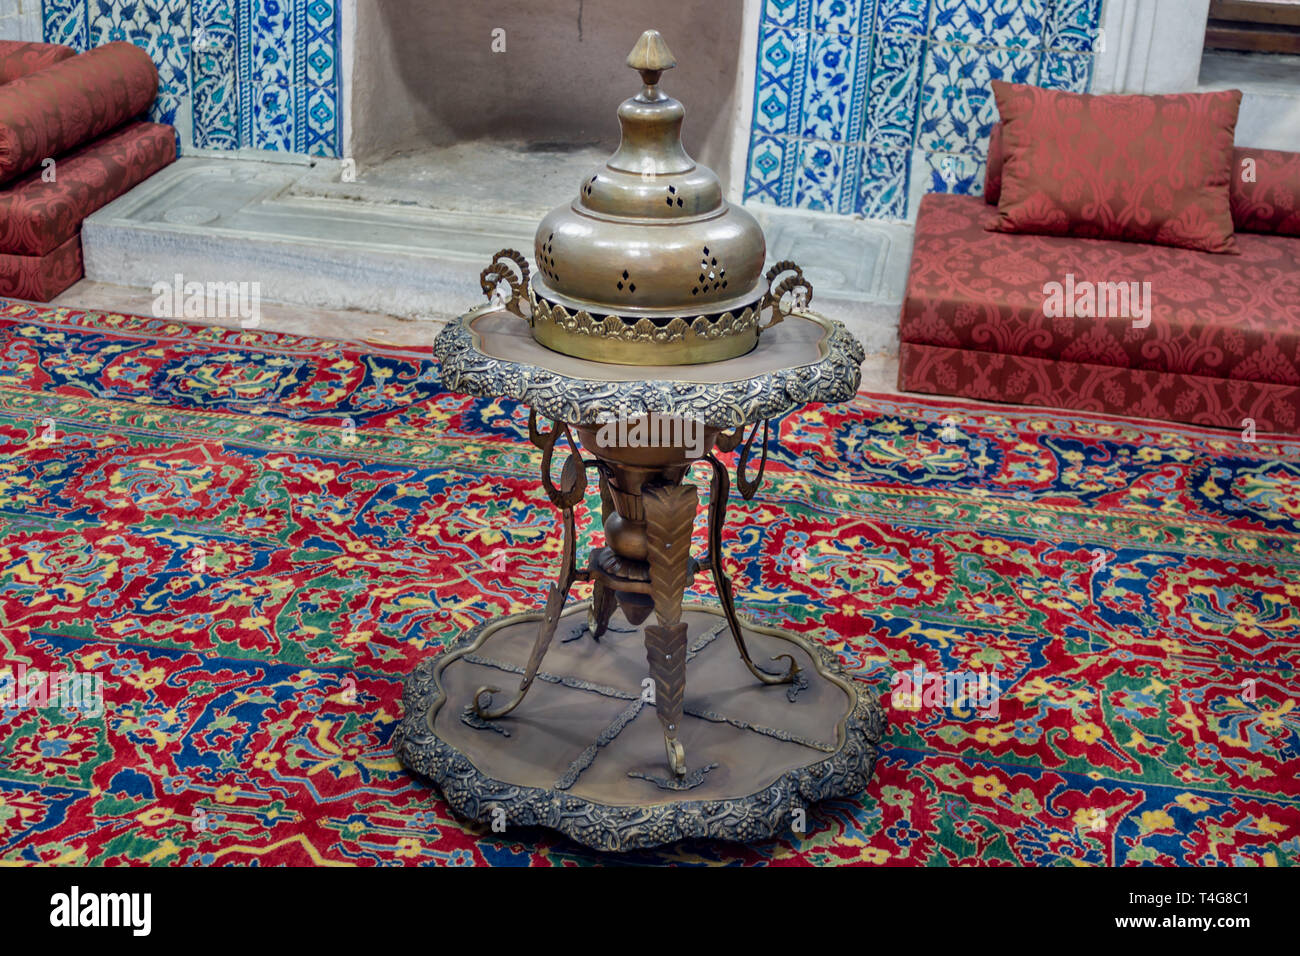 Old antique stove, Turkish Ottoman style - Stock Image